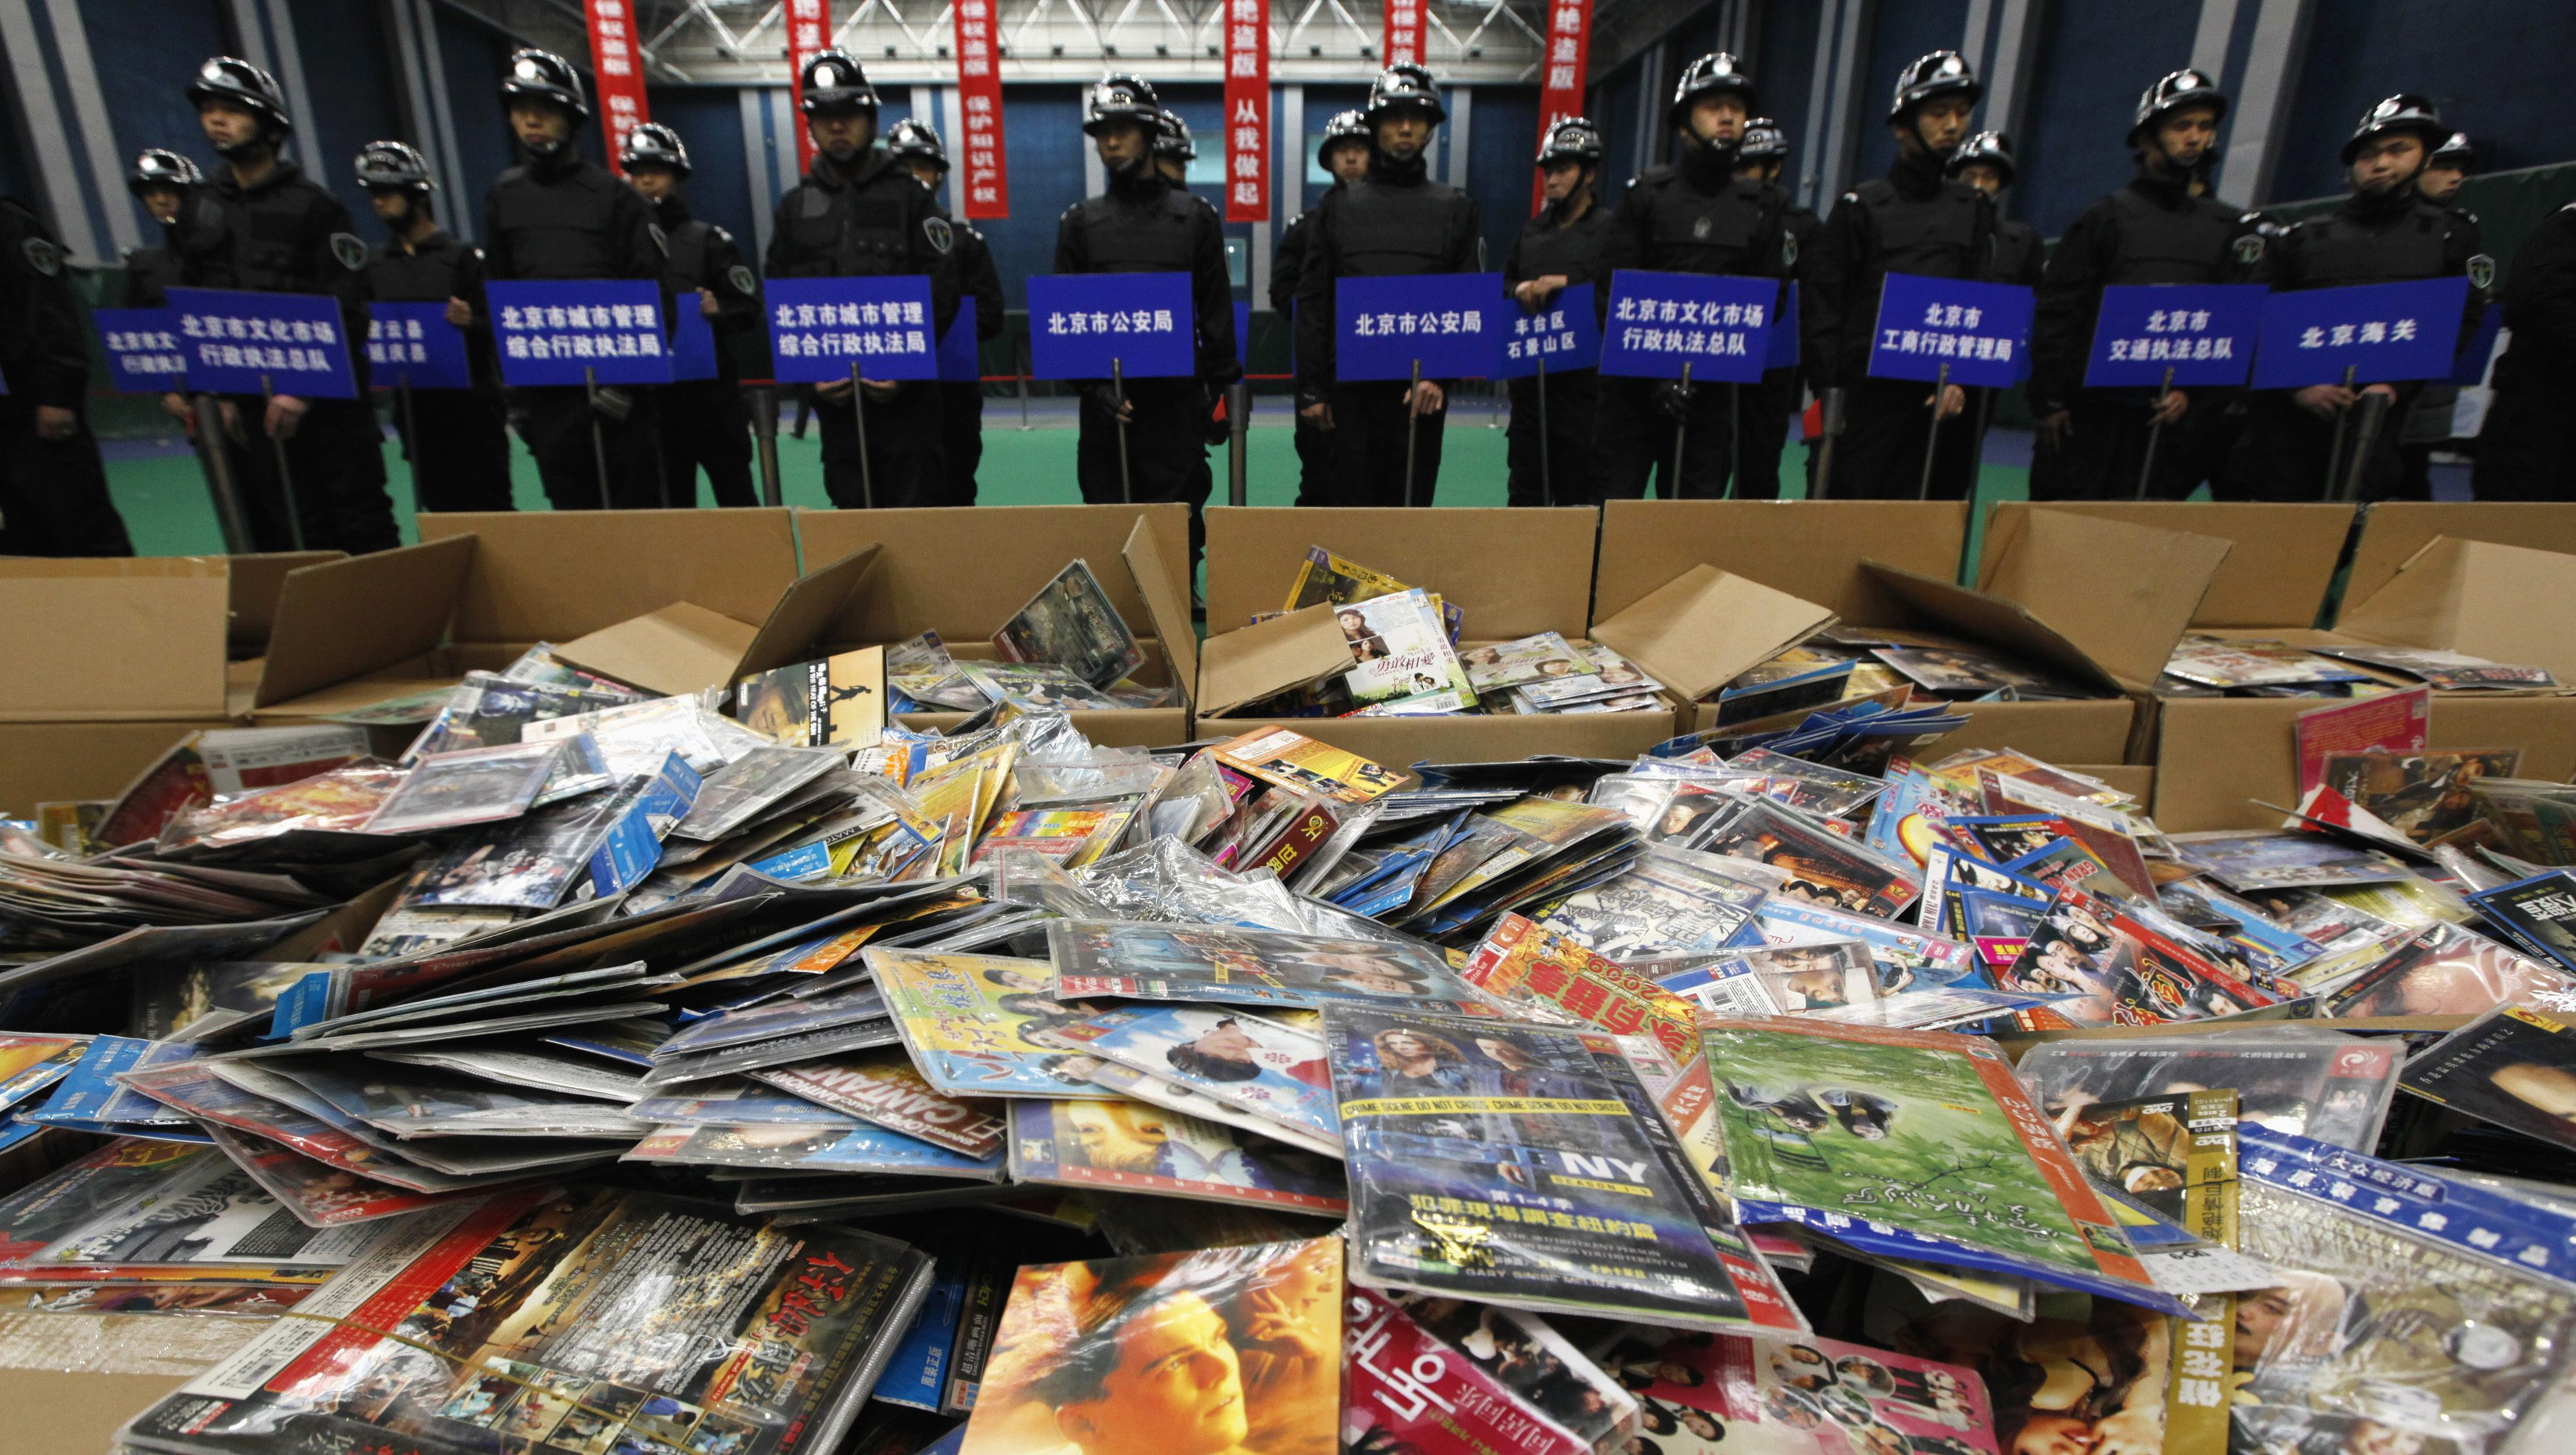 Security guards stand next to pirated DVDs which will be destroyed during a campaign against the production and distribution of porn and pirated publications, during a photo opportunity inside a gymnasium in Beijing January 10, 2011.